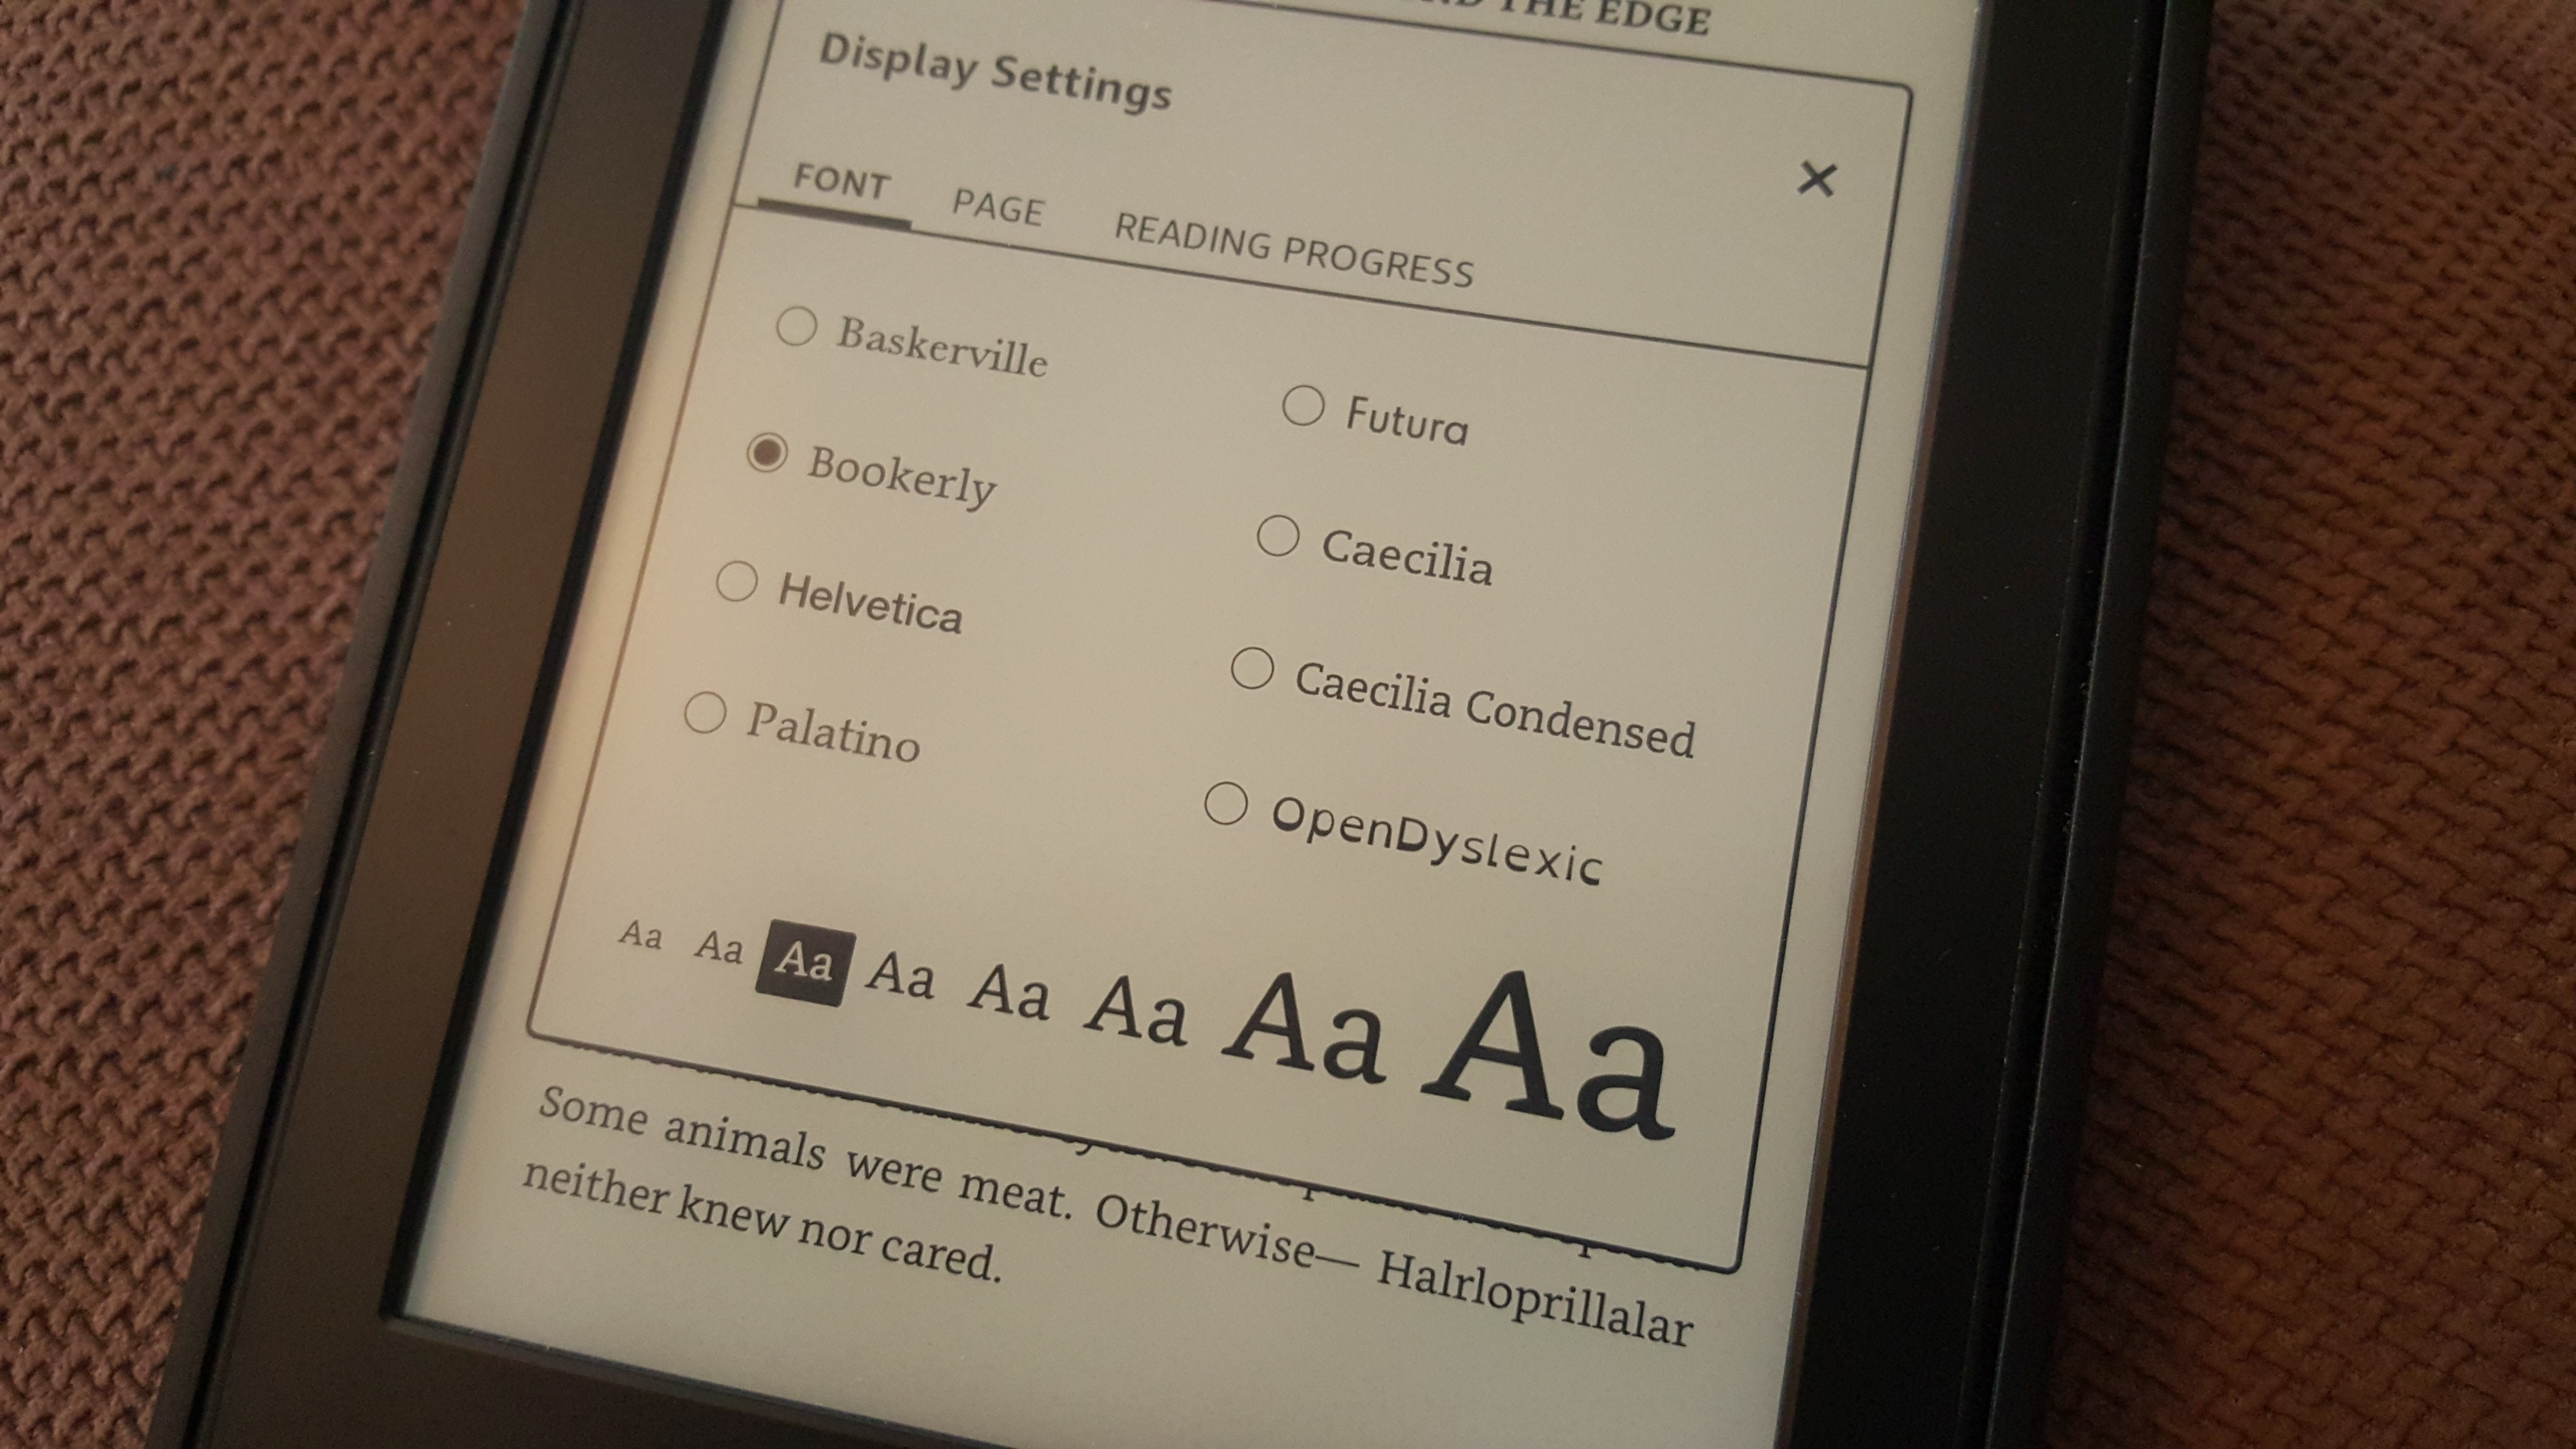 kindle paperwhite review great resolution but the features